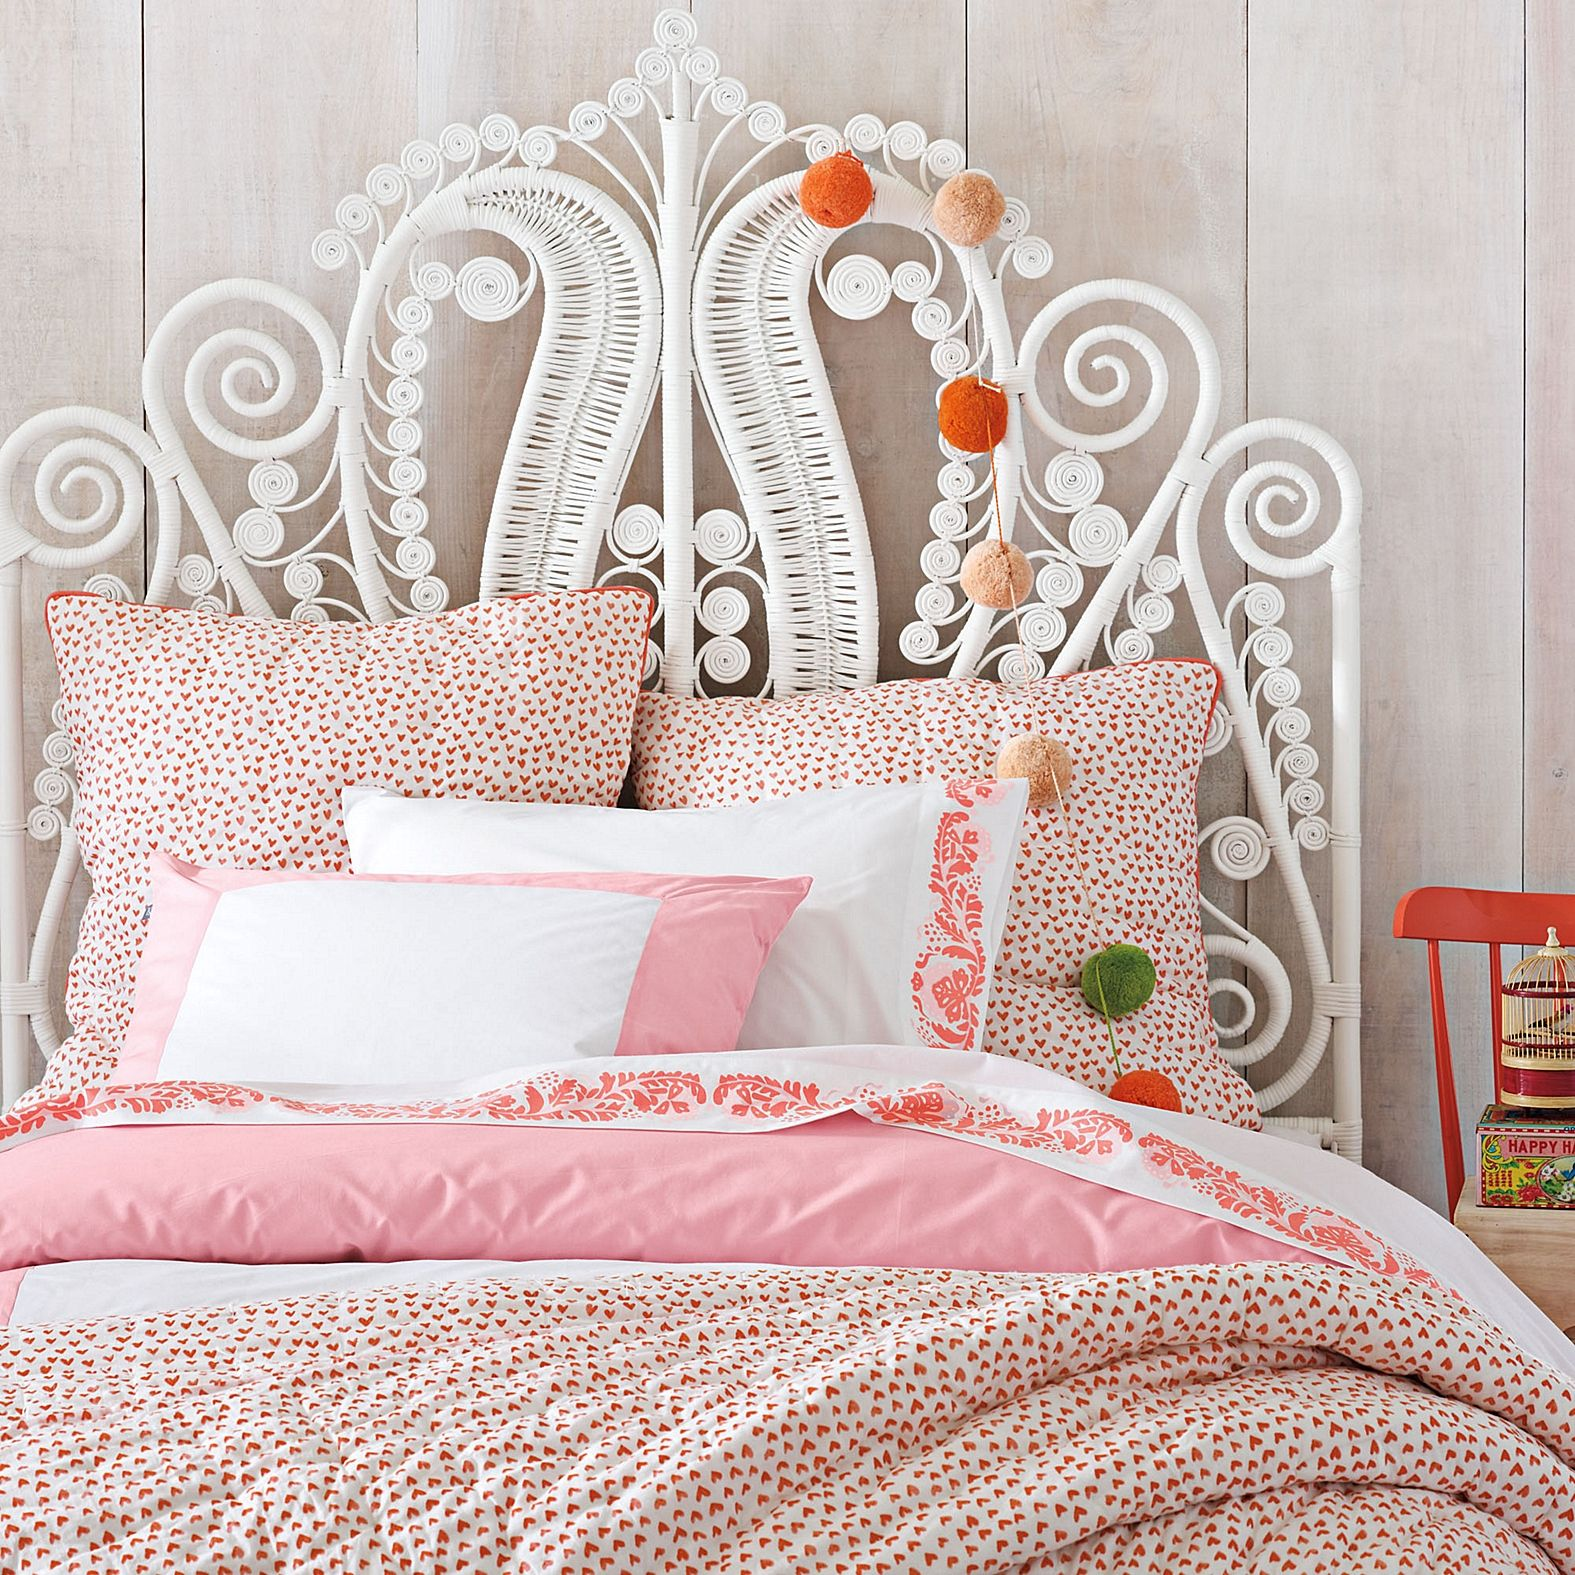 behind do headboards bedroom about should girls what images boy upholstered out engaging small of left picture youre you to headboard boys shared pink design white color girl and before find ideas room astounding